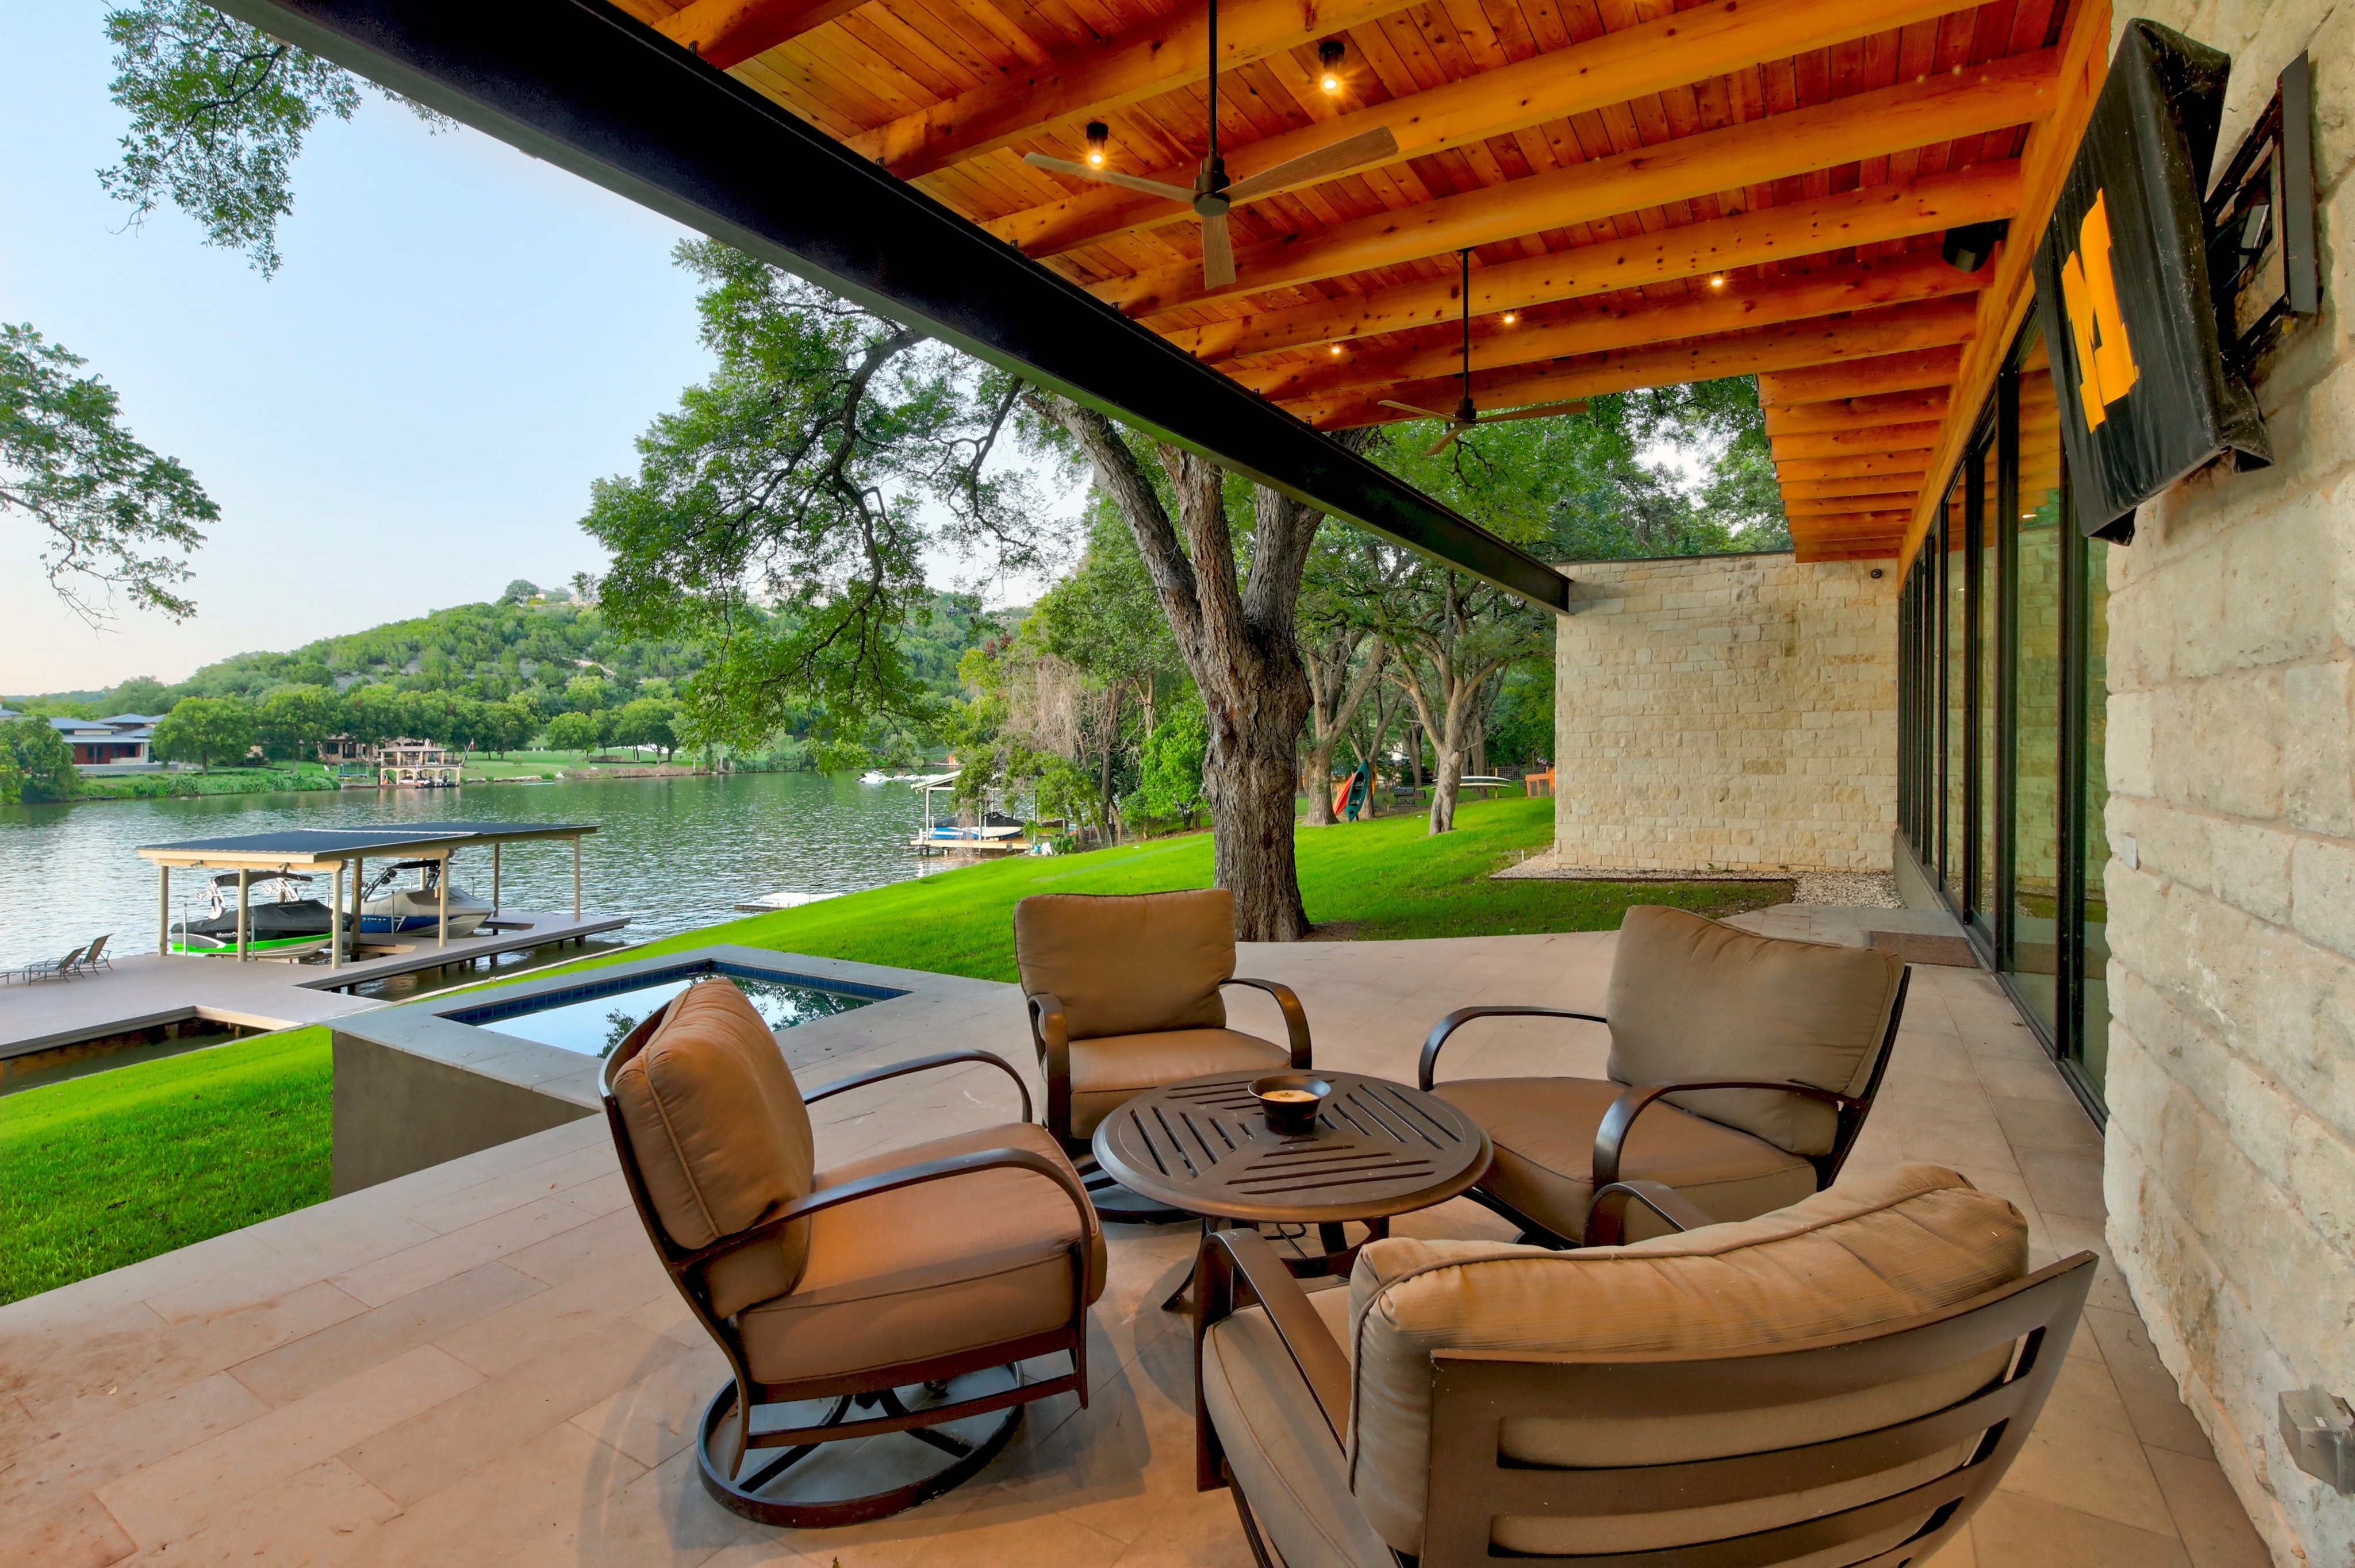 waterfront lake austin contemporary asks 5 3m curbed austin